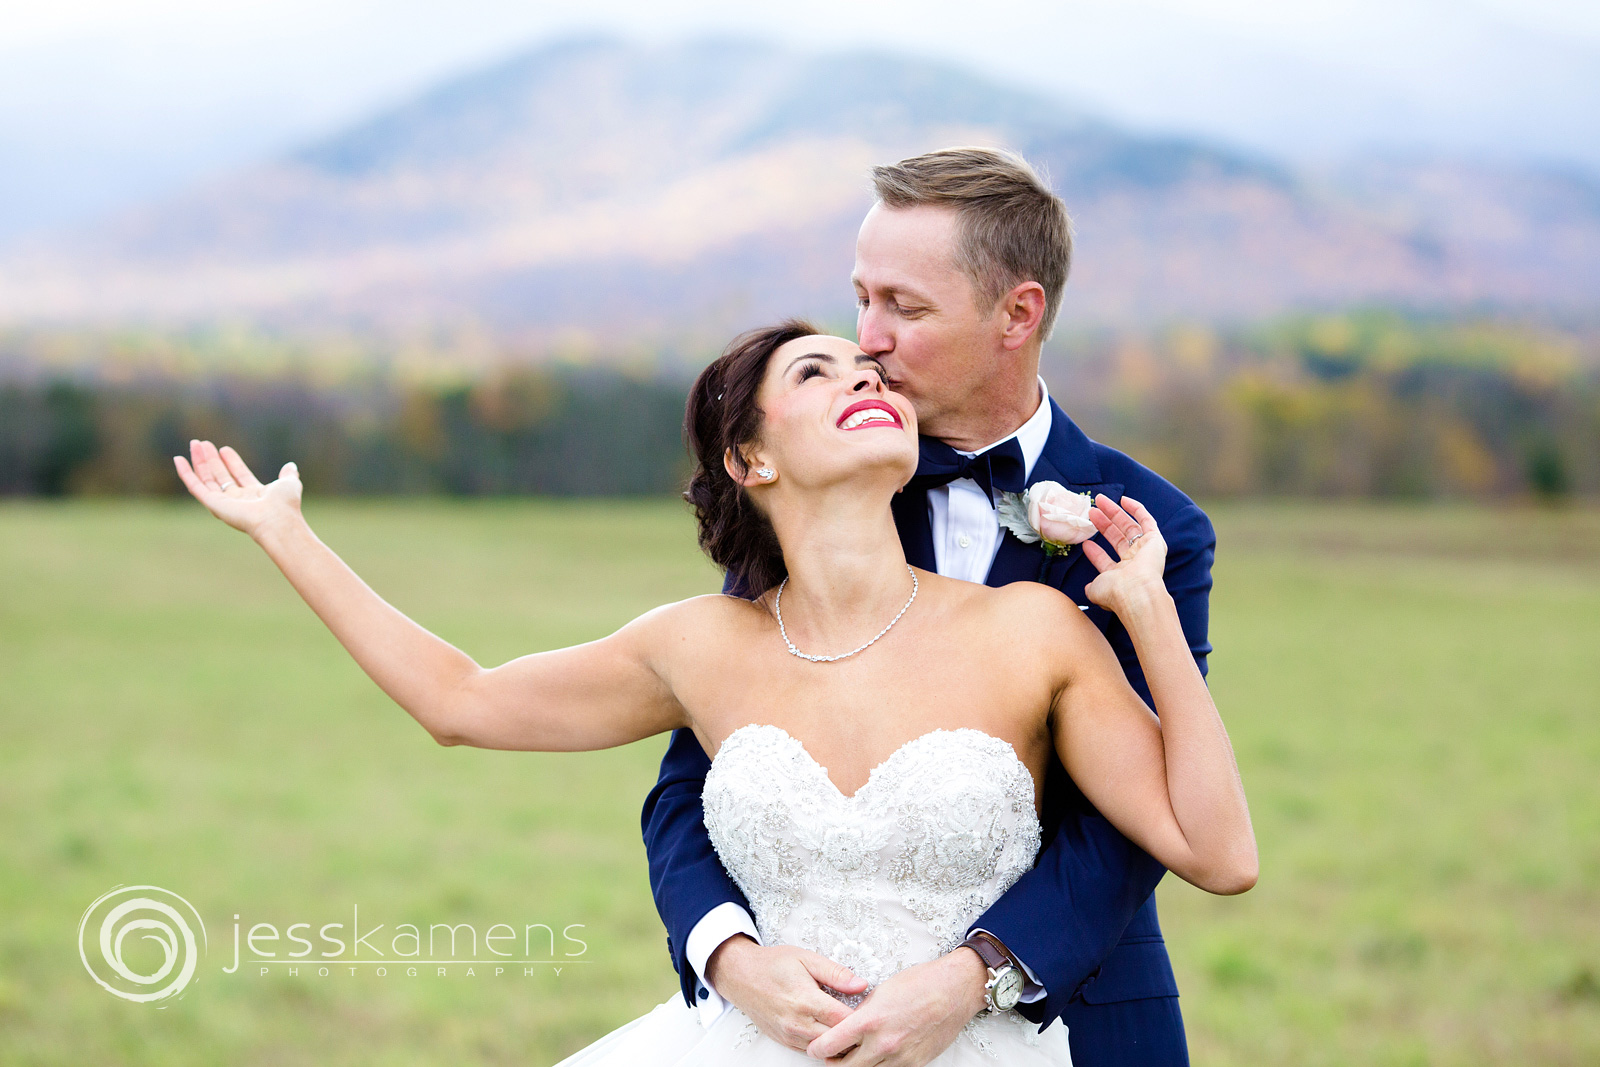 new husband kisses wife after their wedding in the adirondacks